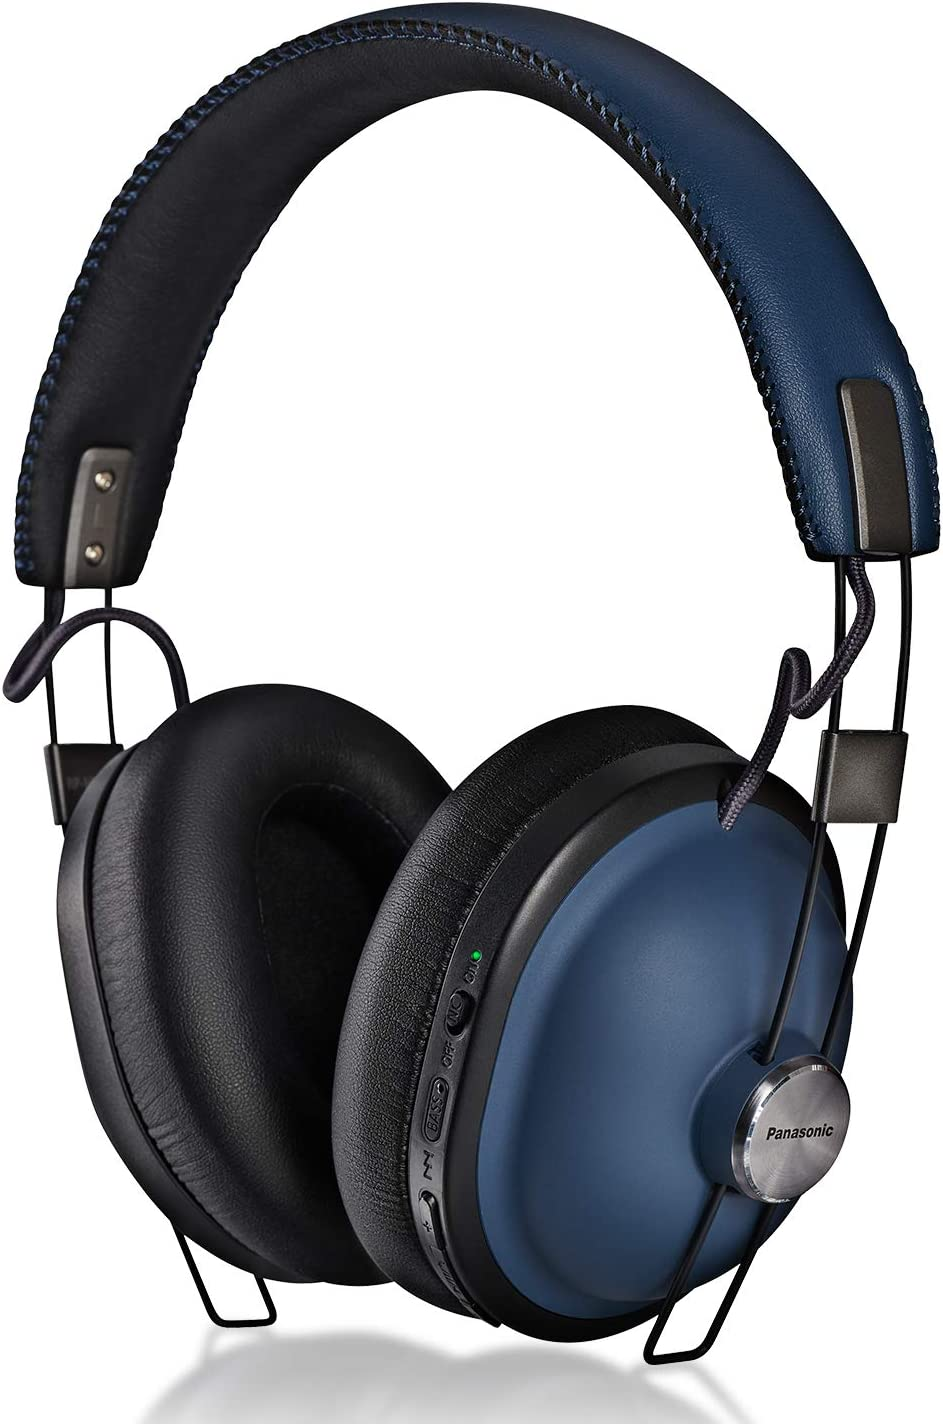 Best Budget Wireless Noise Cancelling Headphones